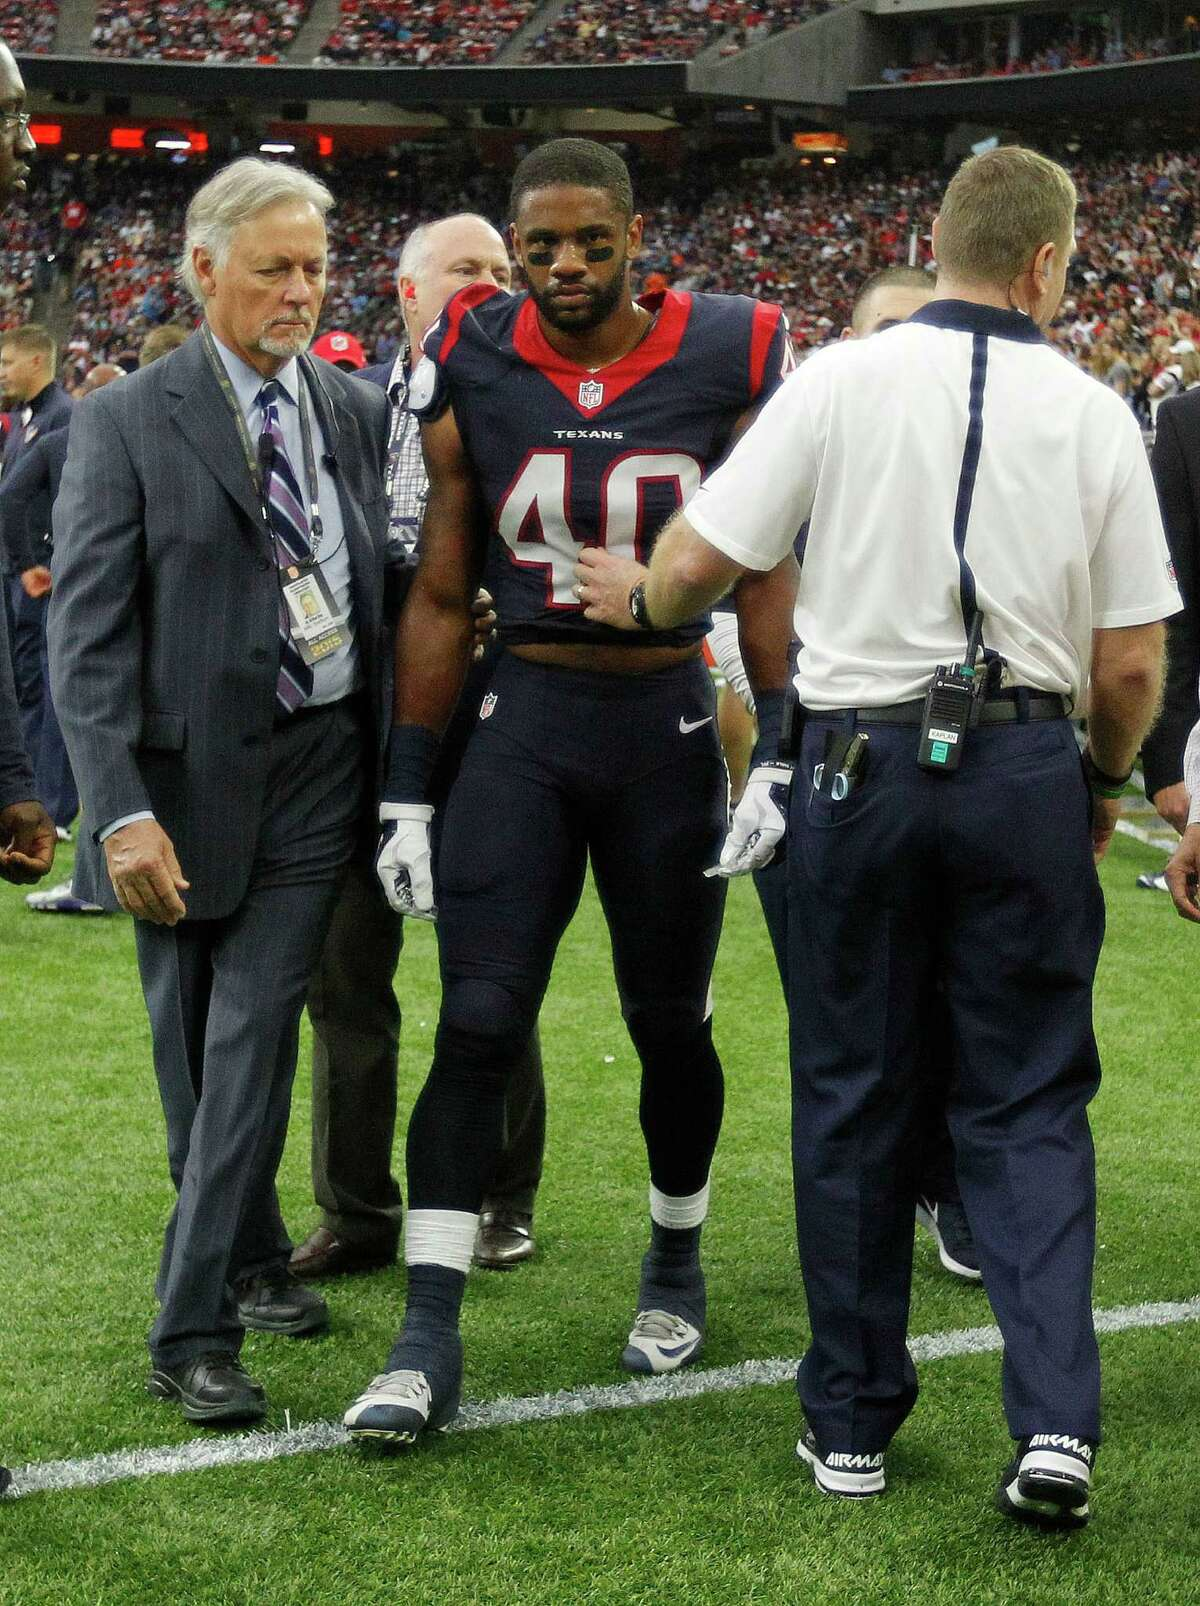 Dr. Arthur Day, a professor of neurosurgery at UTHealth, helps to escort Kurtis Drummond (40) back to the locker room after an injury during the second quarter of an NFL game at NRG Stadium on Sunday, Nov. 1, 2015, in Houston.